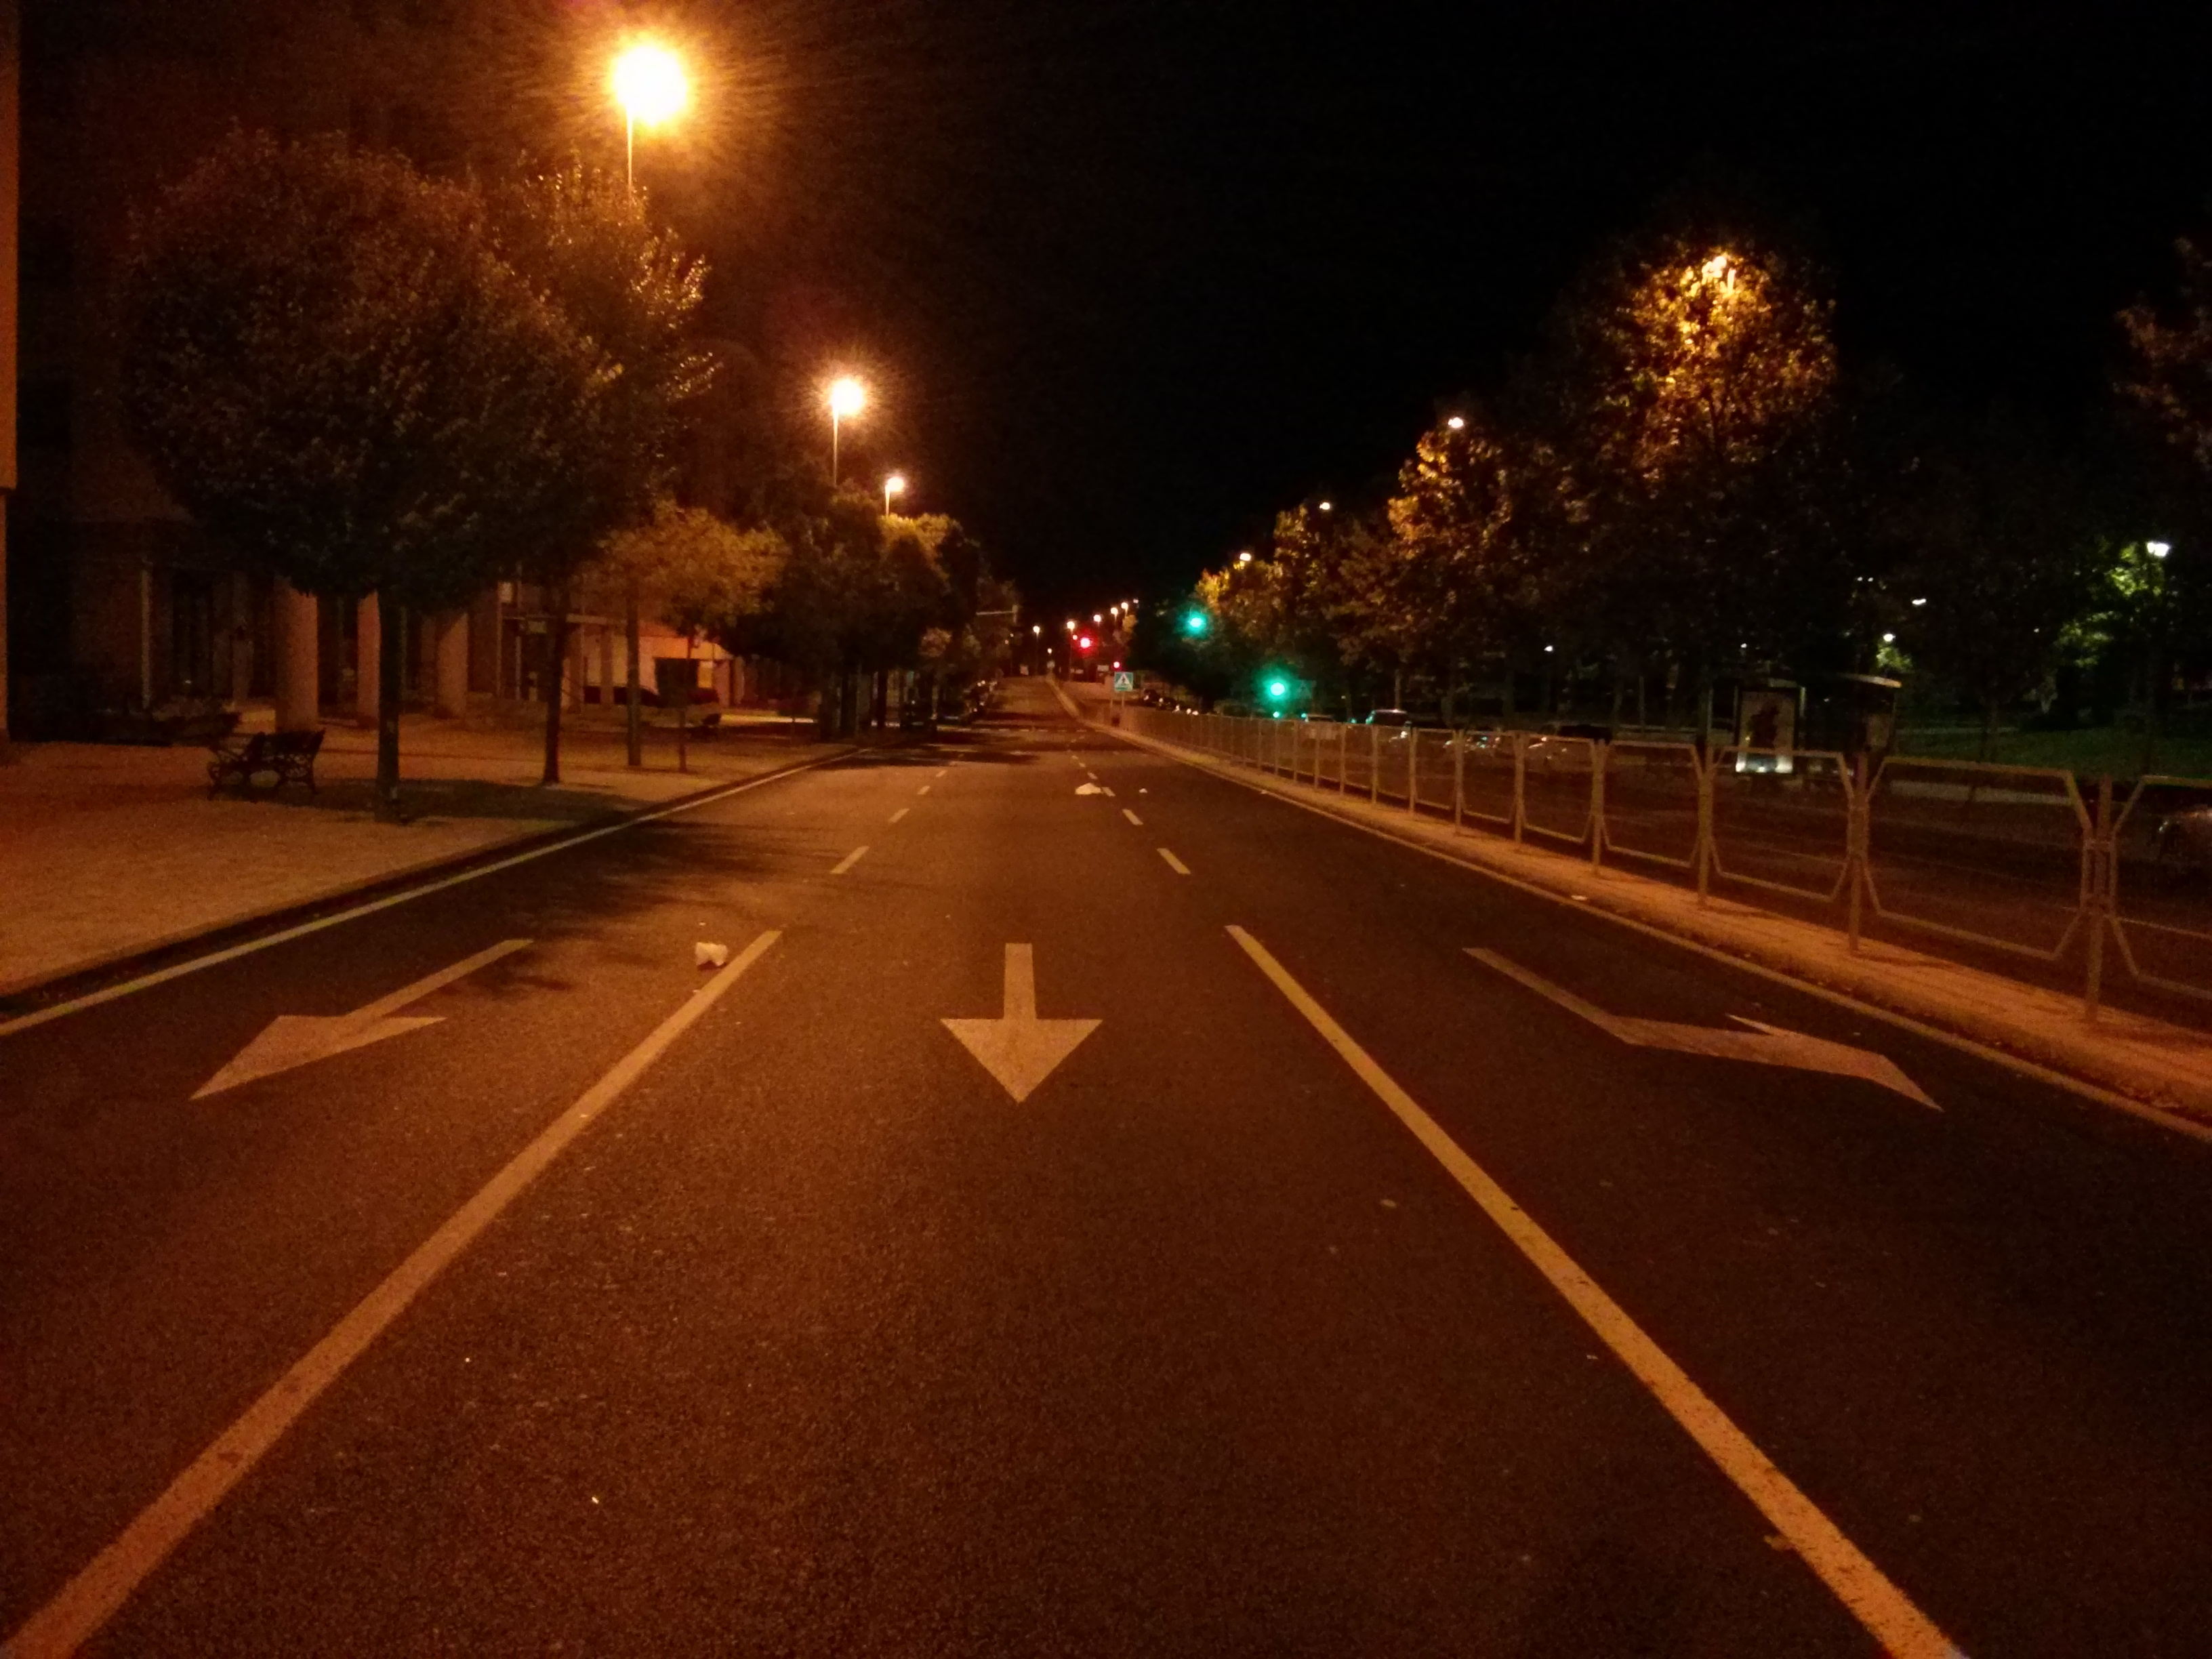 Empty_road_at_night1